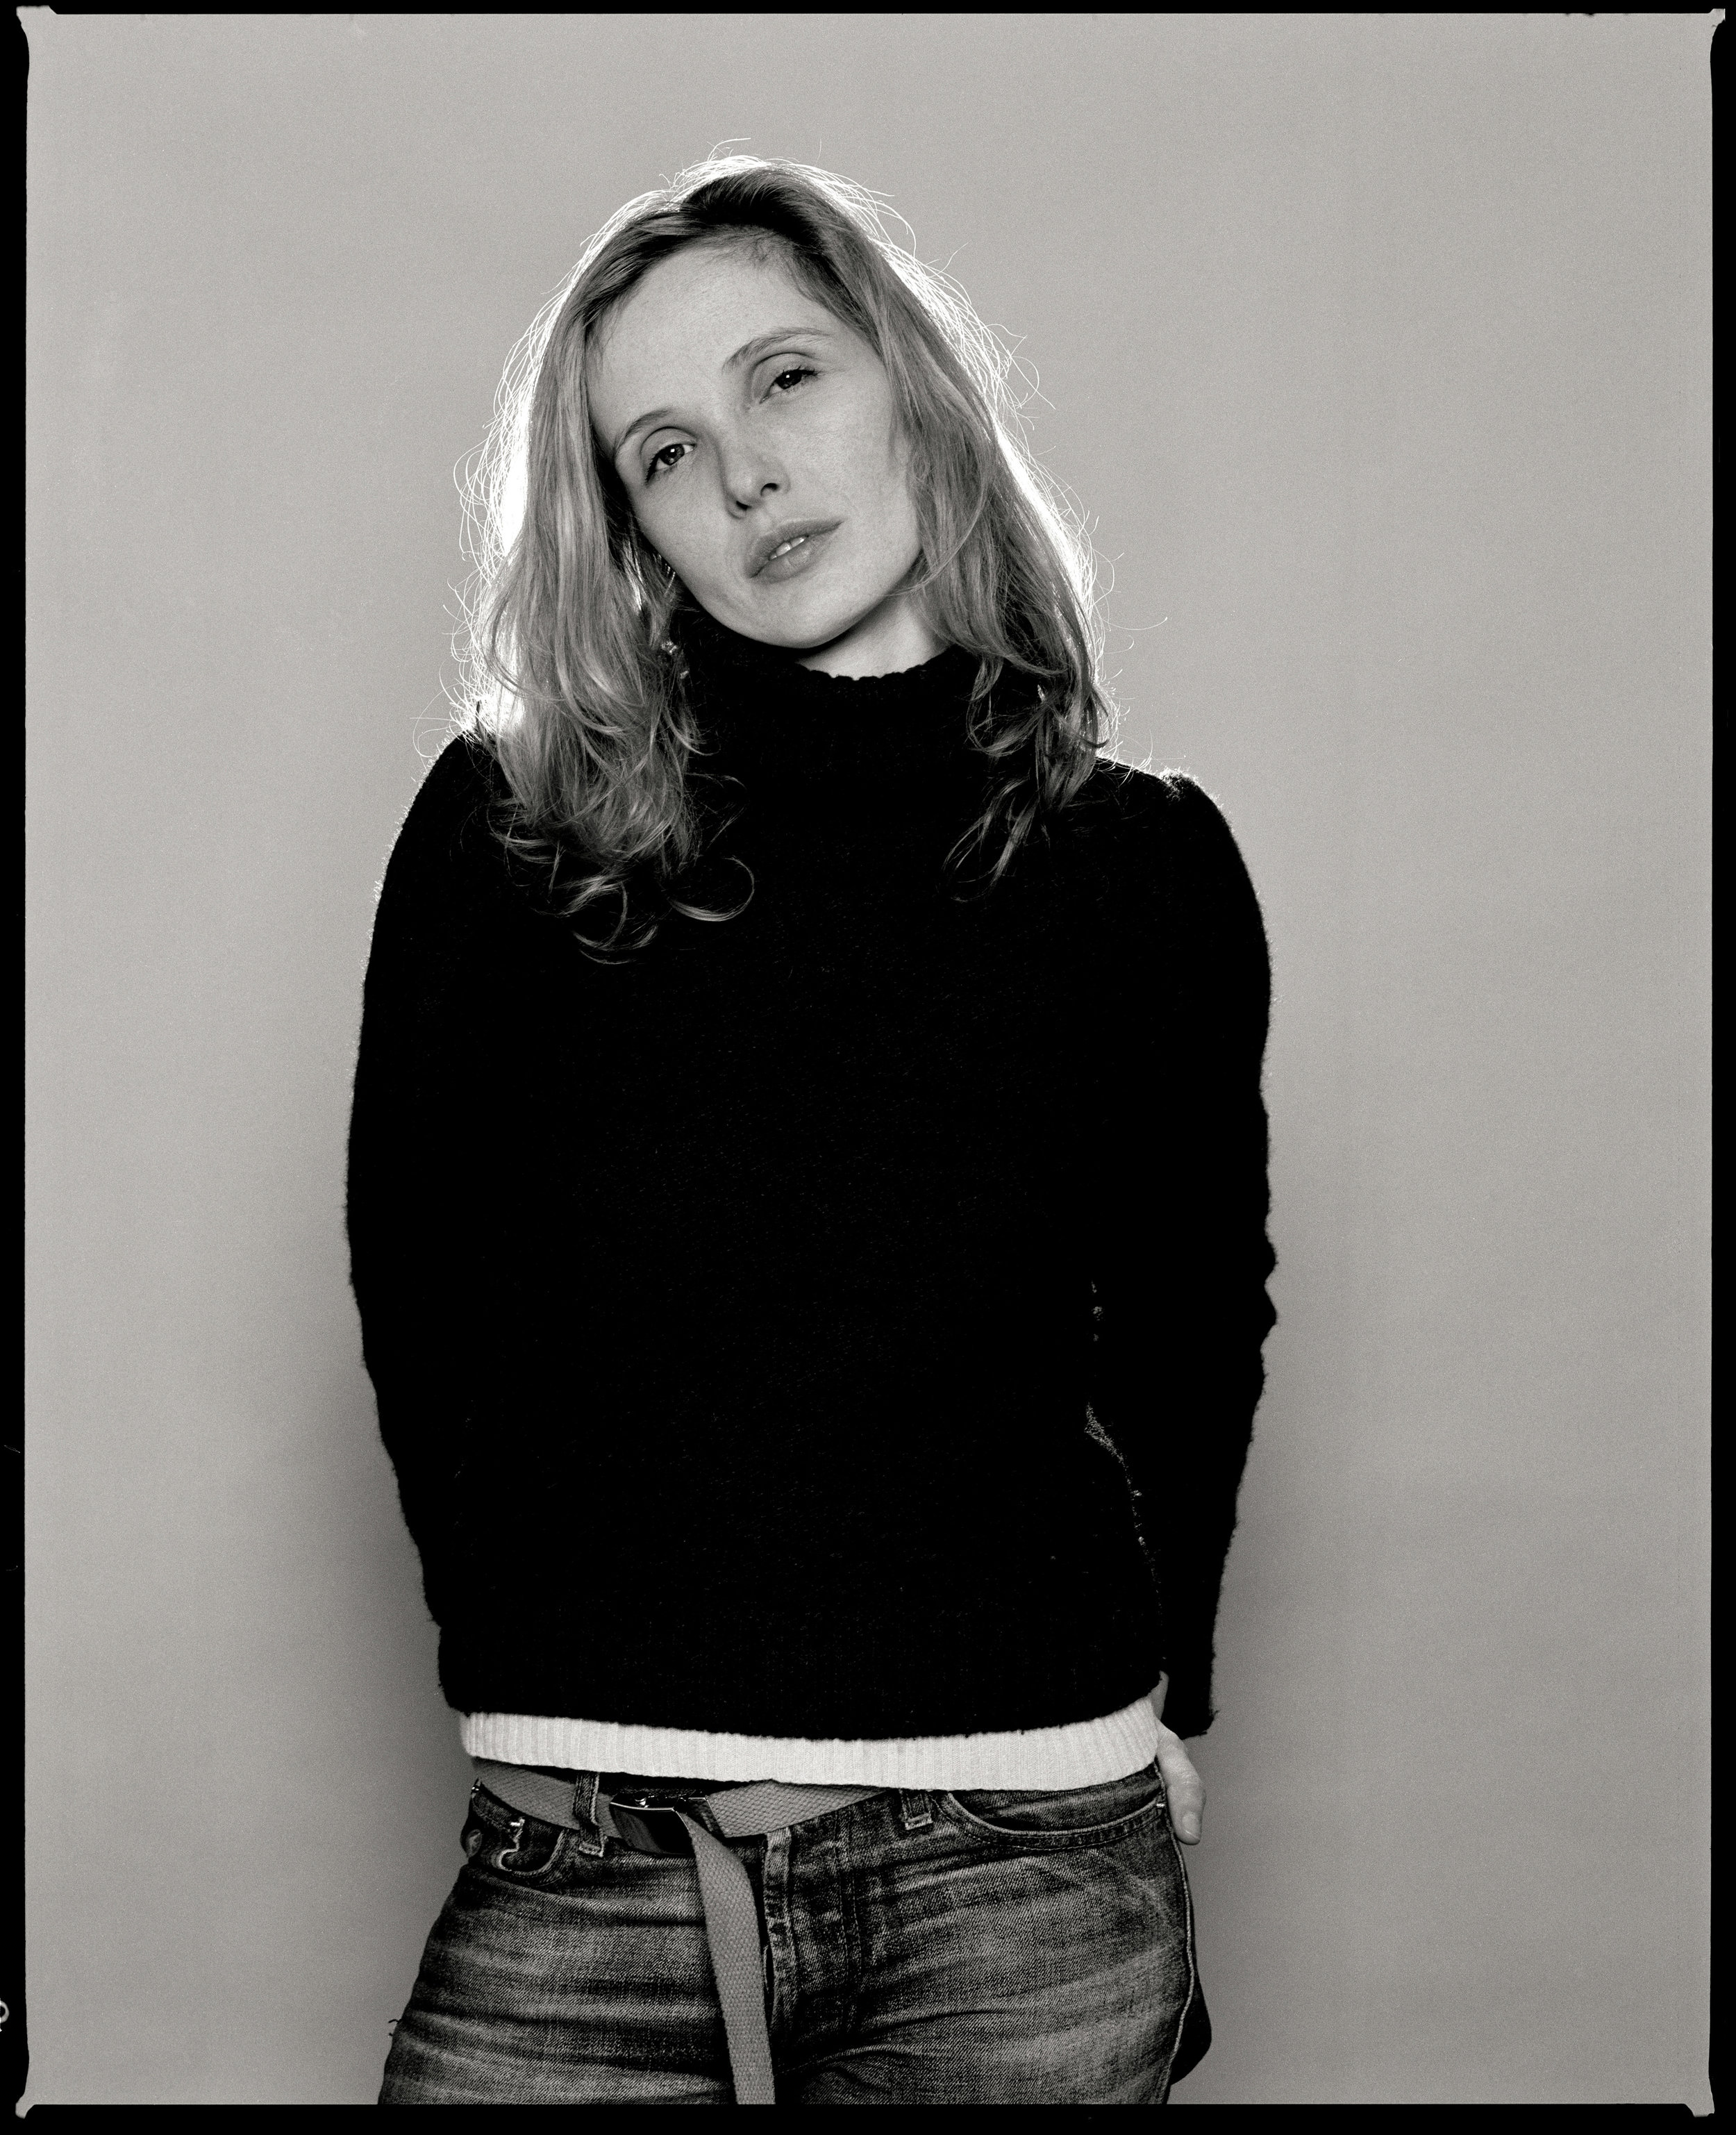 Julie Delpy - Actress, Film Director